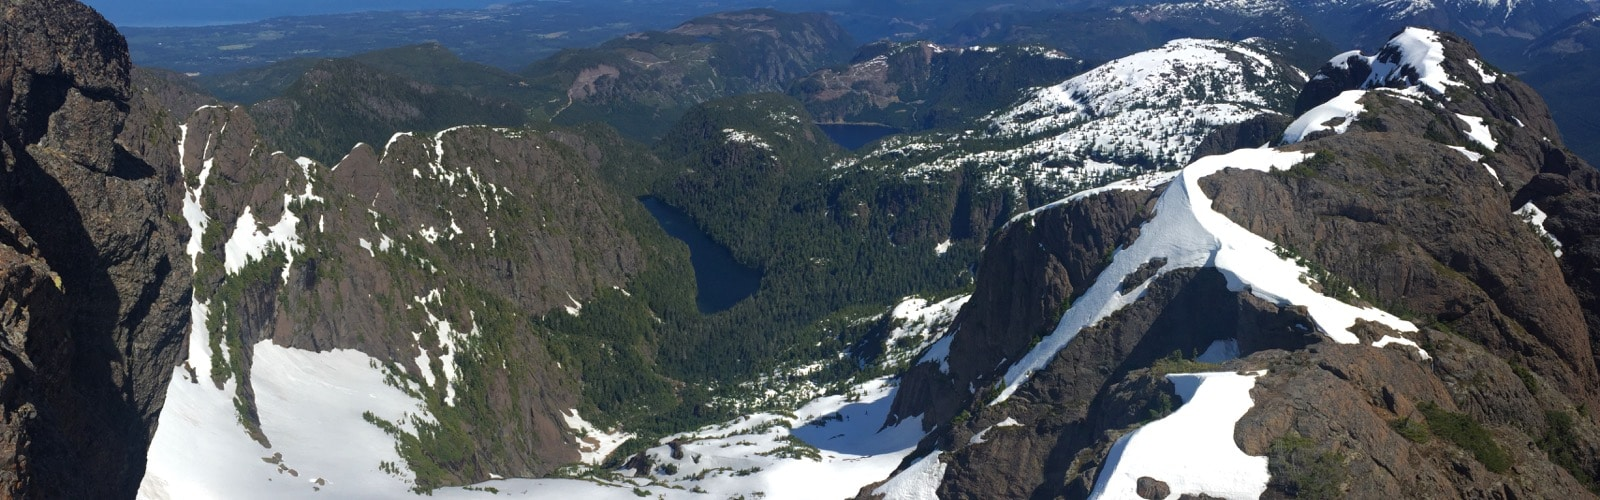 Day Hike Scramble of Mount Arrowsmith UnJudges Route